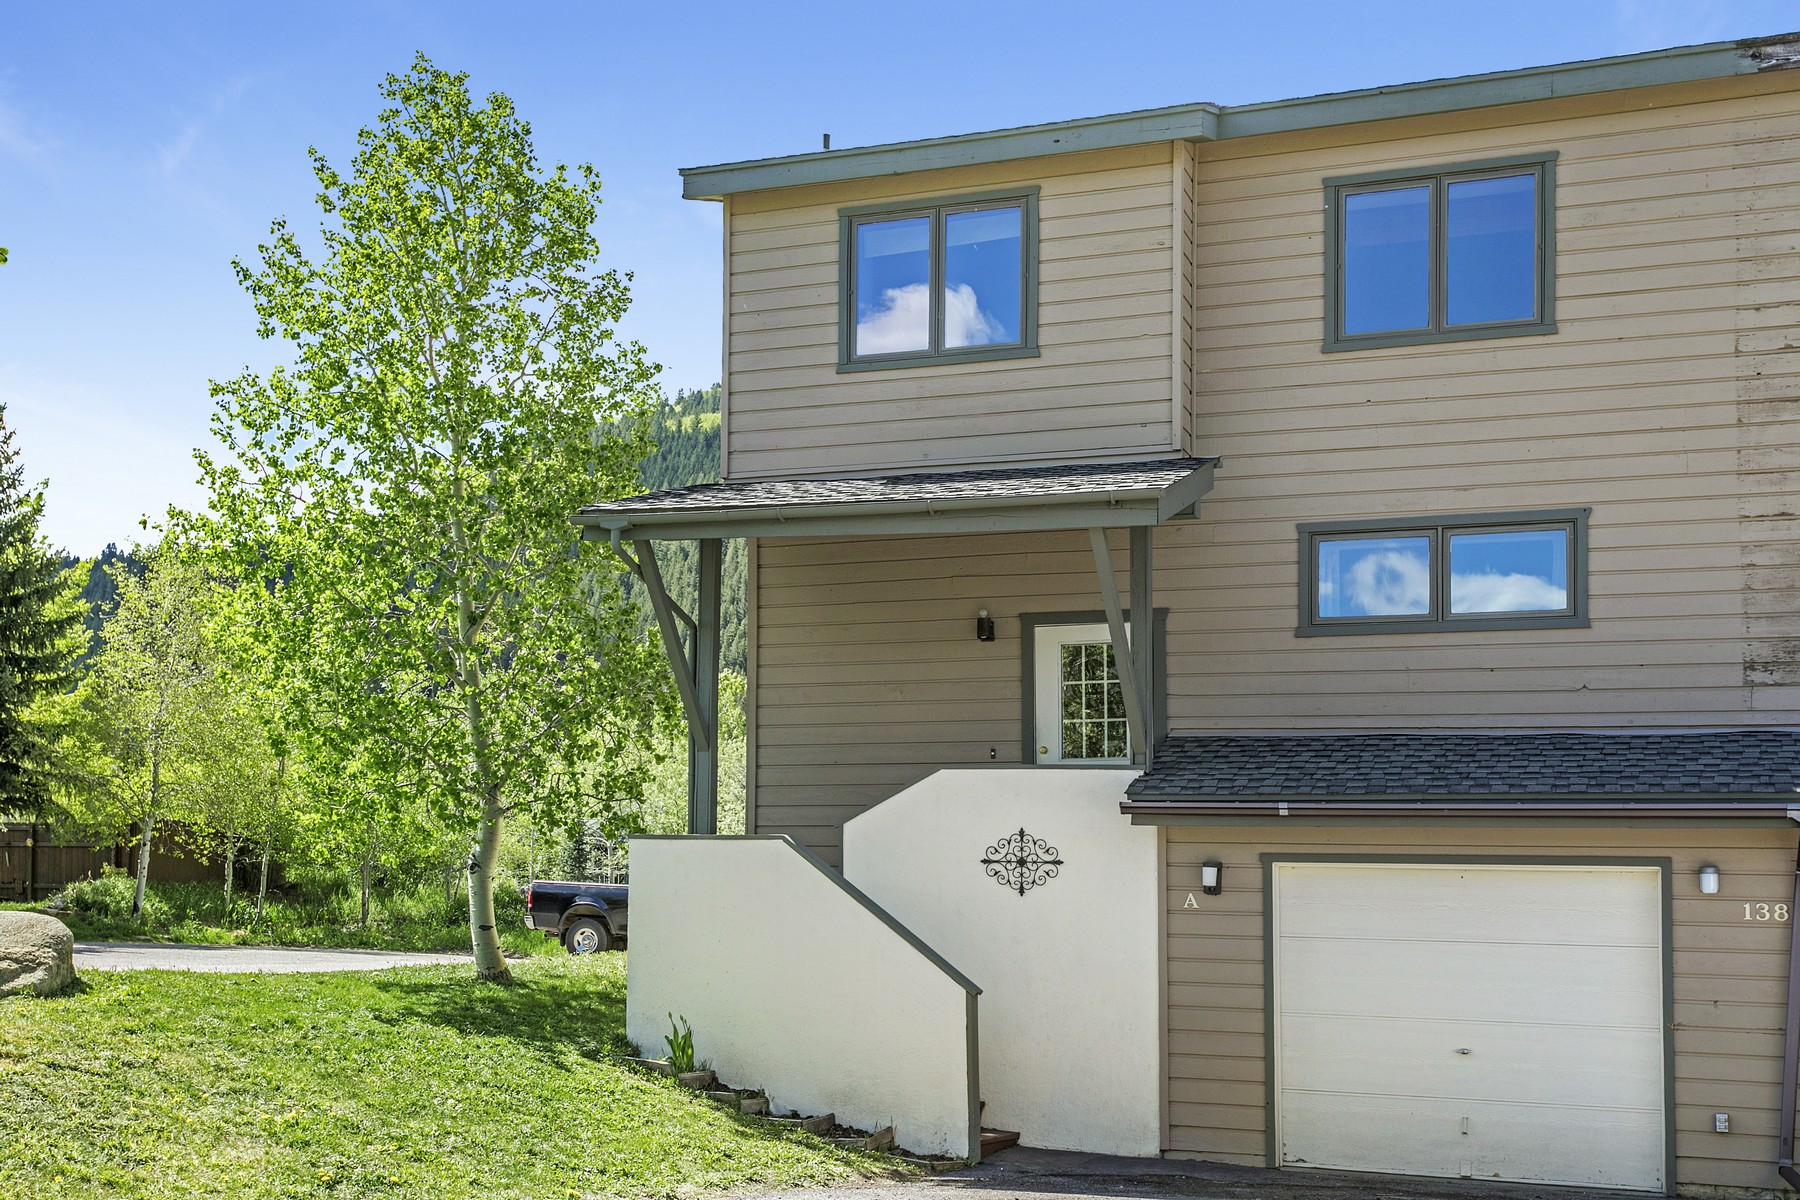 Townhouse for Active at Riverside Sun Homes #A 138 Riverside Ct #A Eagle Vail, Colorado 81620 United States